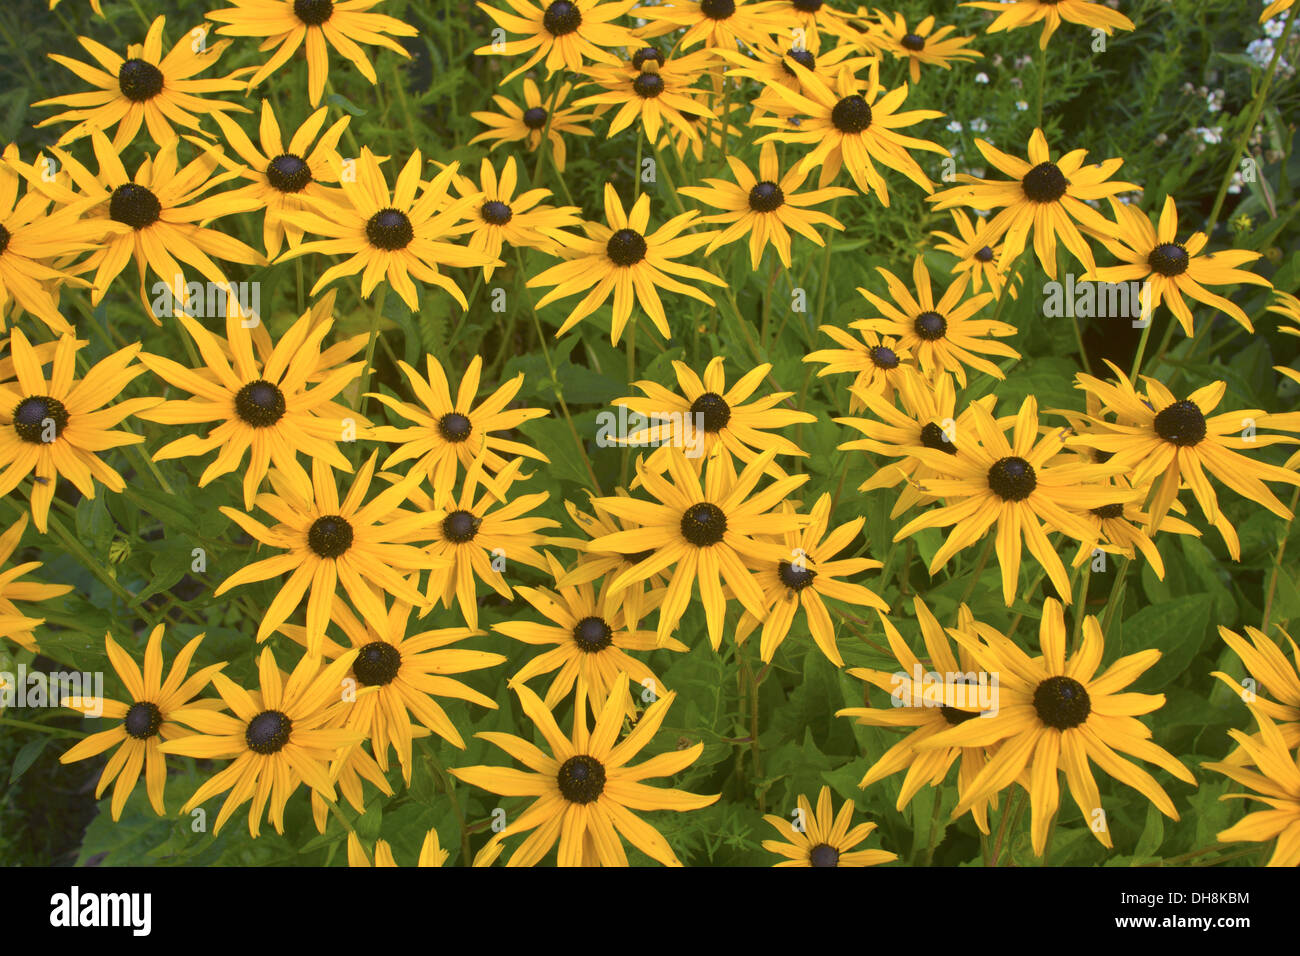 Daisy Black Eyed Susan perennial flowering plant in a garden. - Stock Image